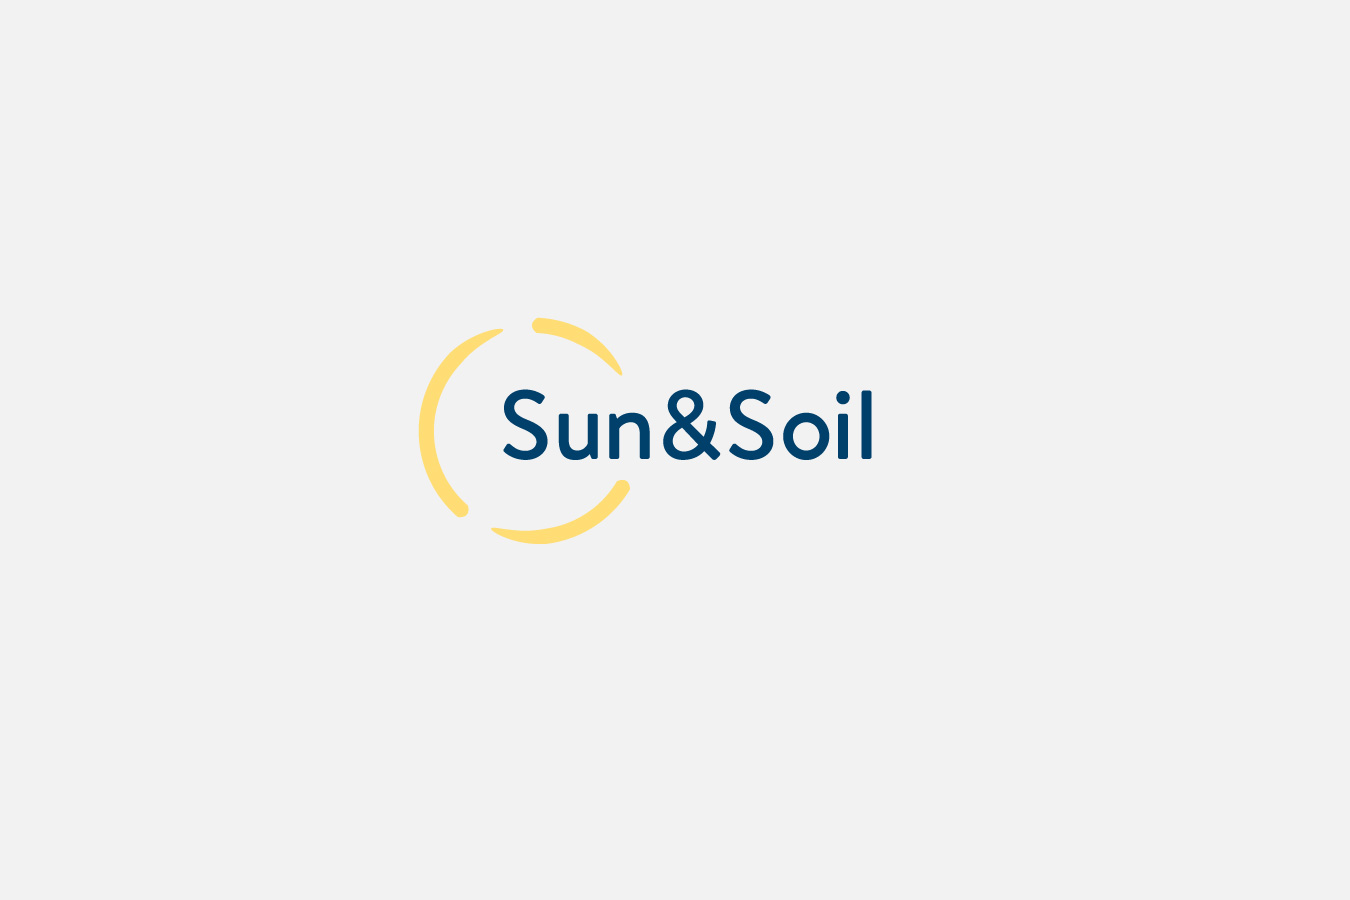 sun-and-soil-branding-hdd-1